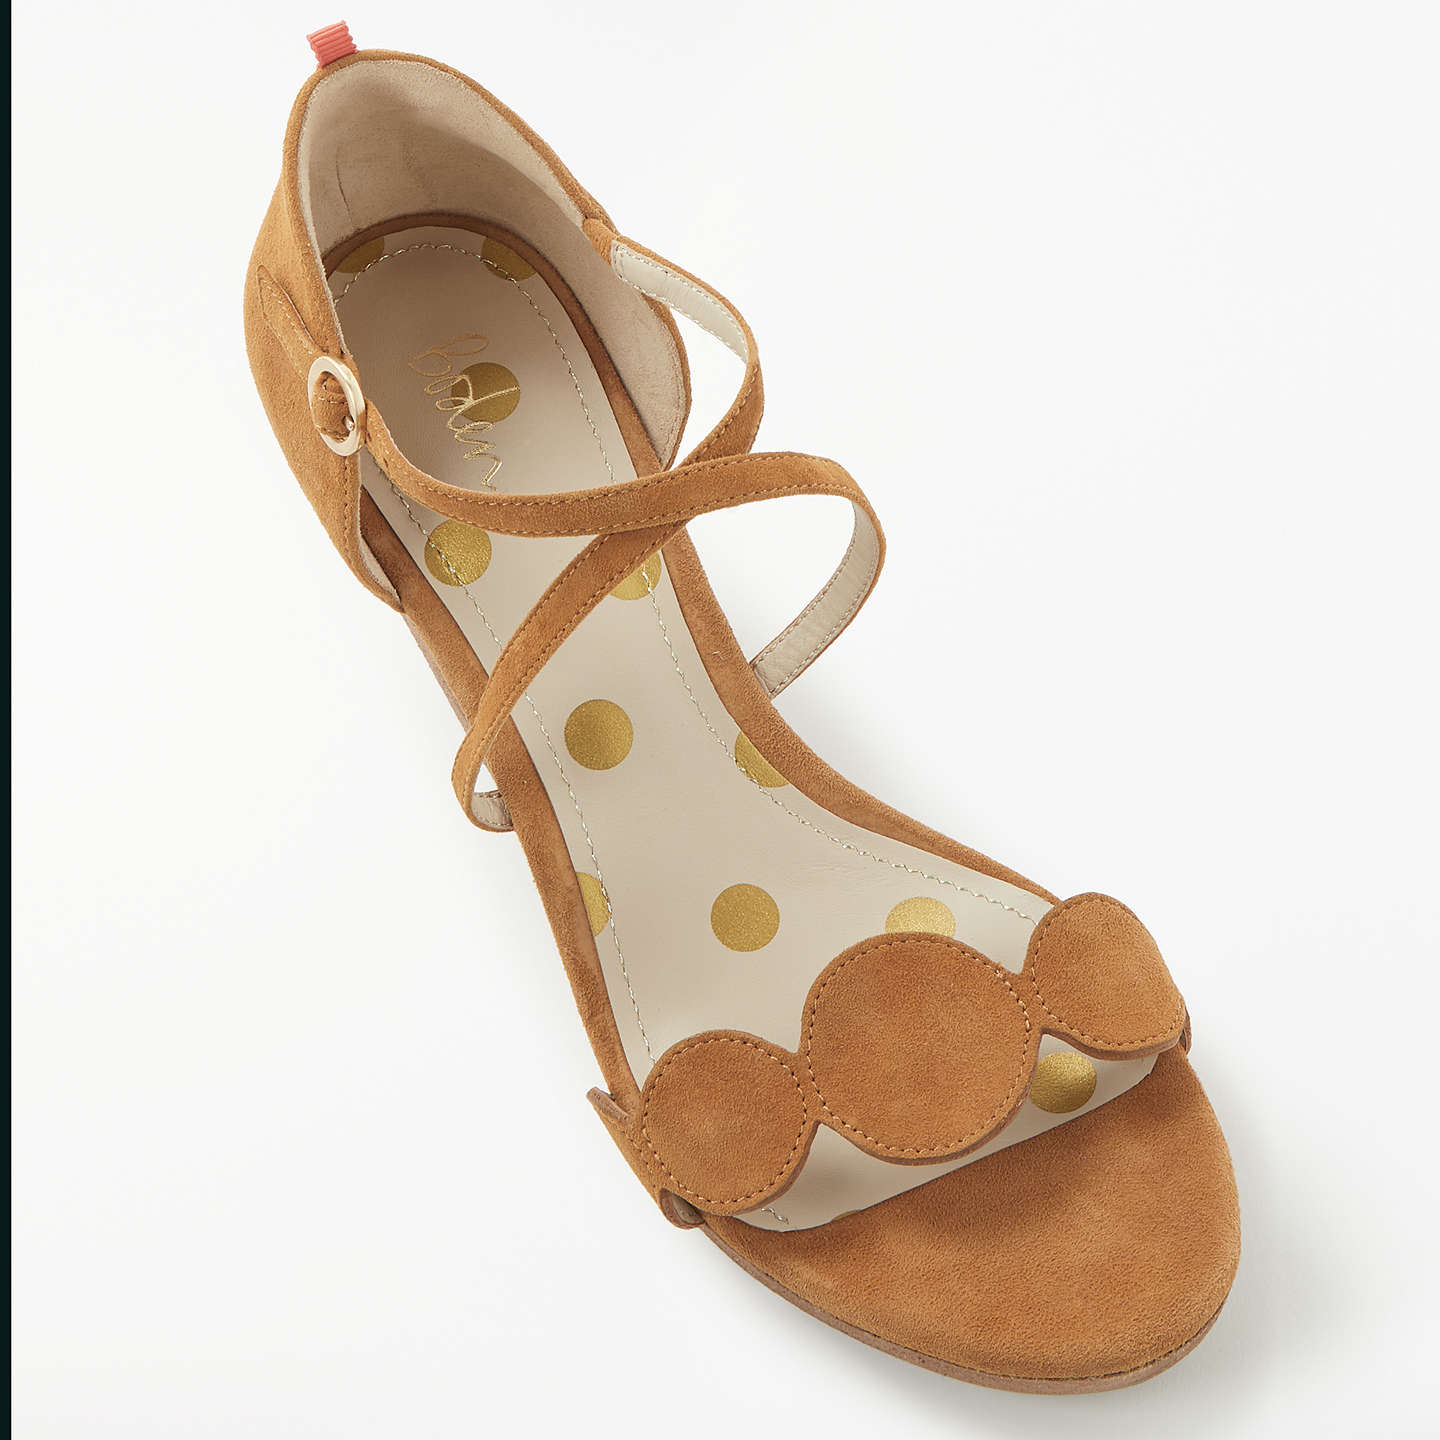 BuyBoden Bethany Wedge Heel Sandals, Brown, 4 Online at johnlewis.com